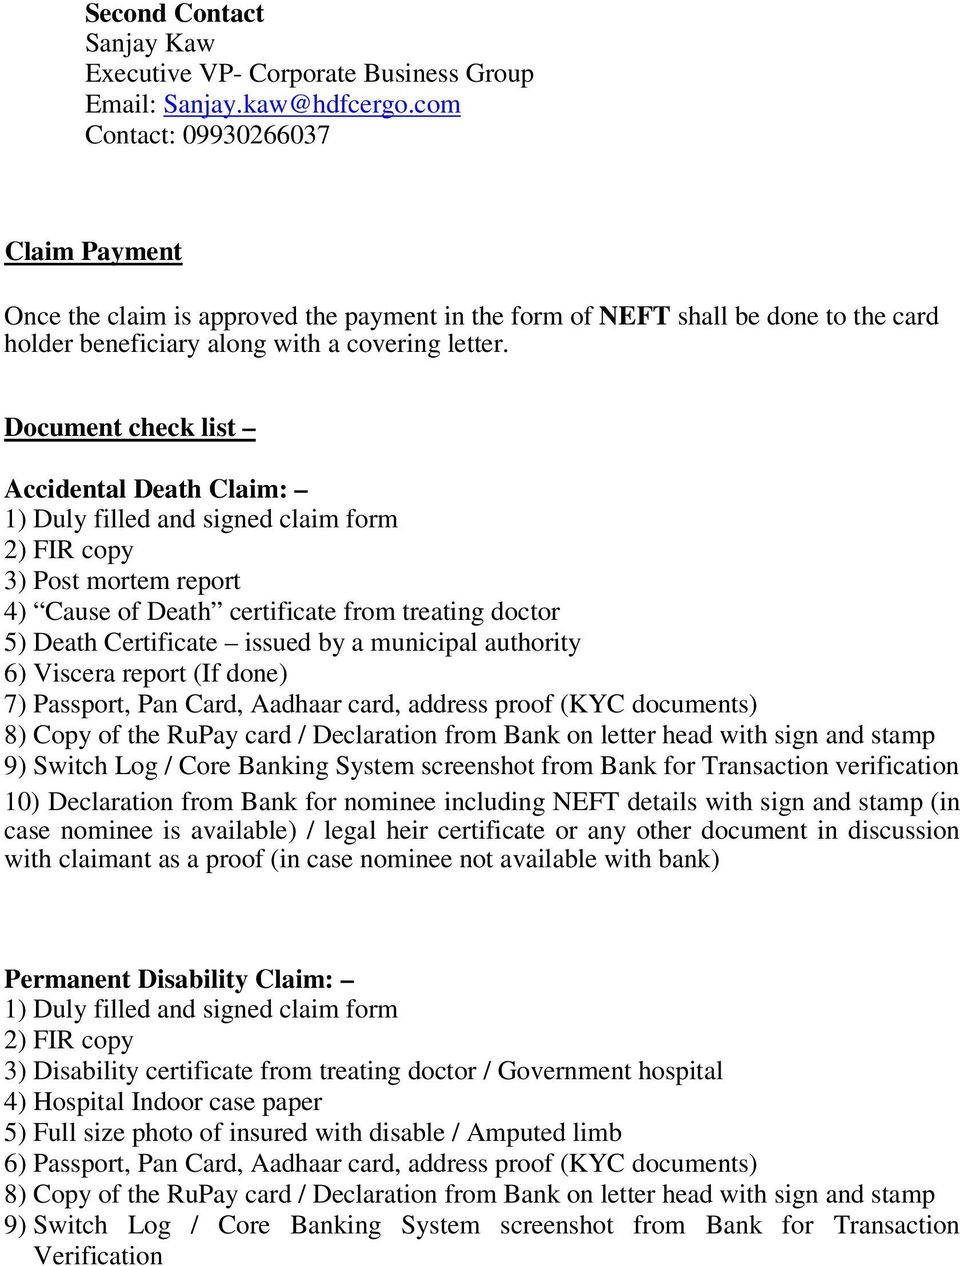 Document check list Accidental Death Claim: 1) Duly filled and signed claim form 2) FIR copy 3) Post mortem report 4) Cause of Death certificate from treating doctor 5) Death Certificate issued by a